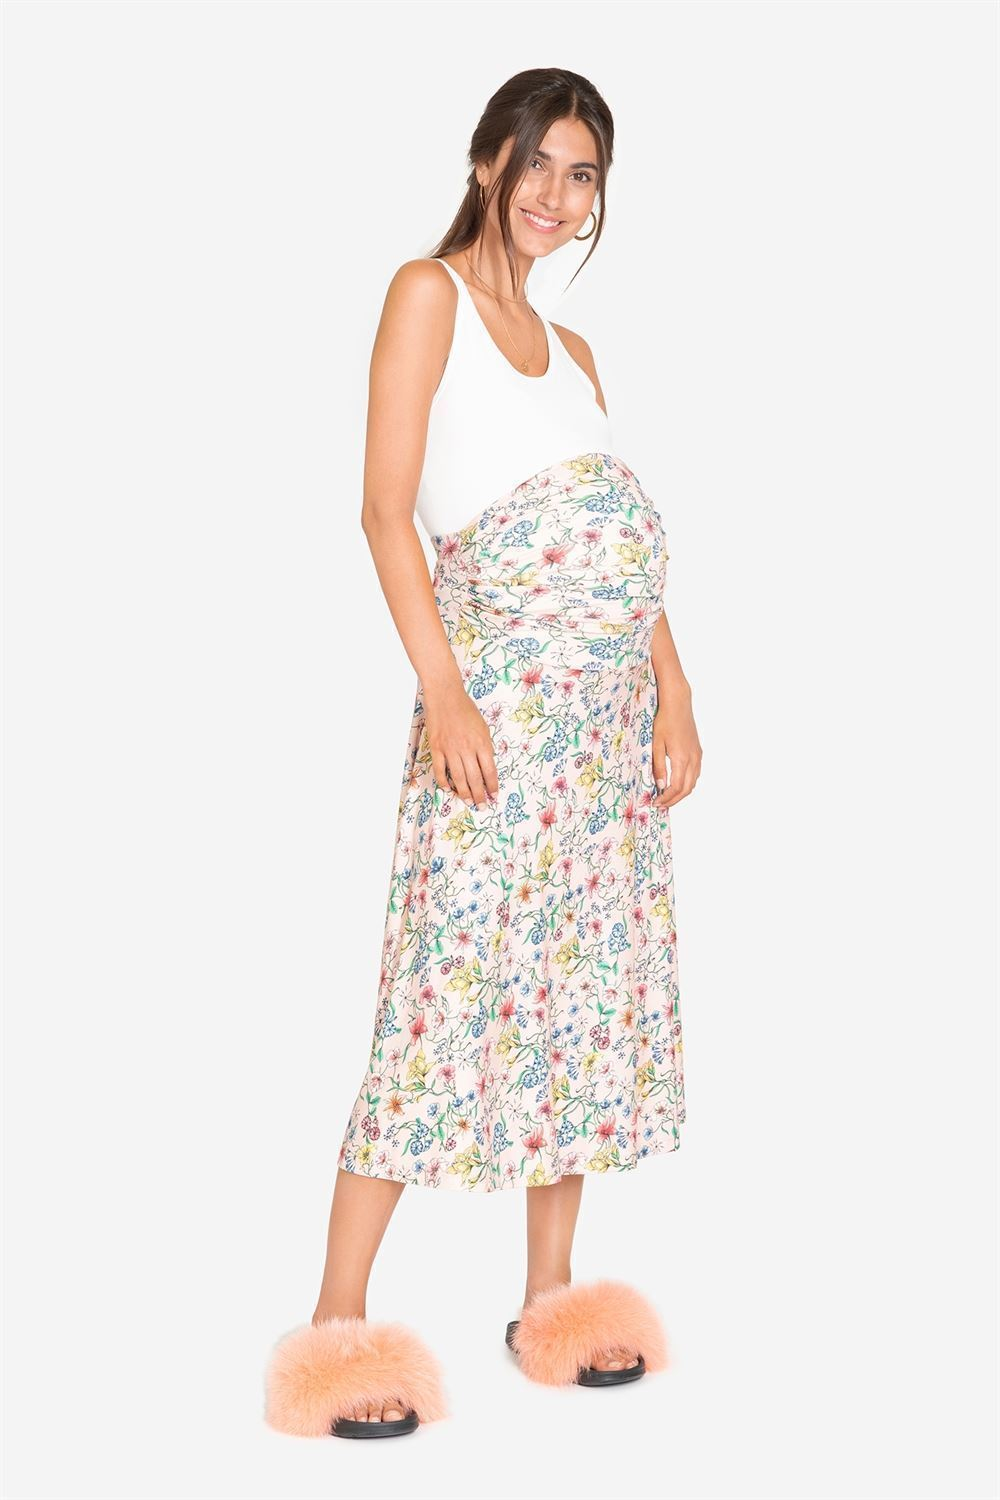 Pink floral maternity skirt - full figur